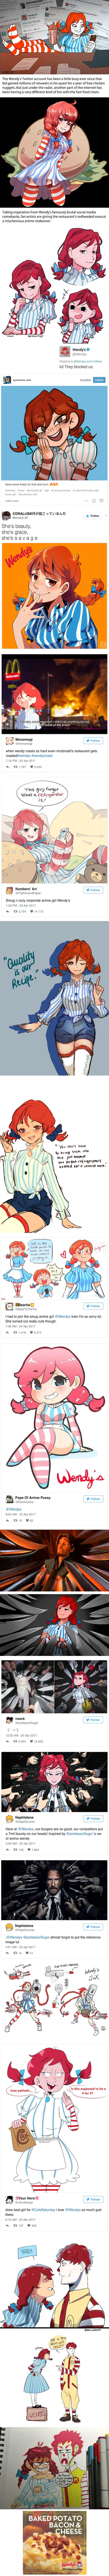 The Internet Turned Wendy's Twitter Into a Smug Anime Girl